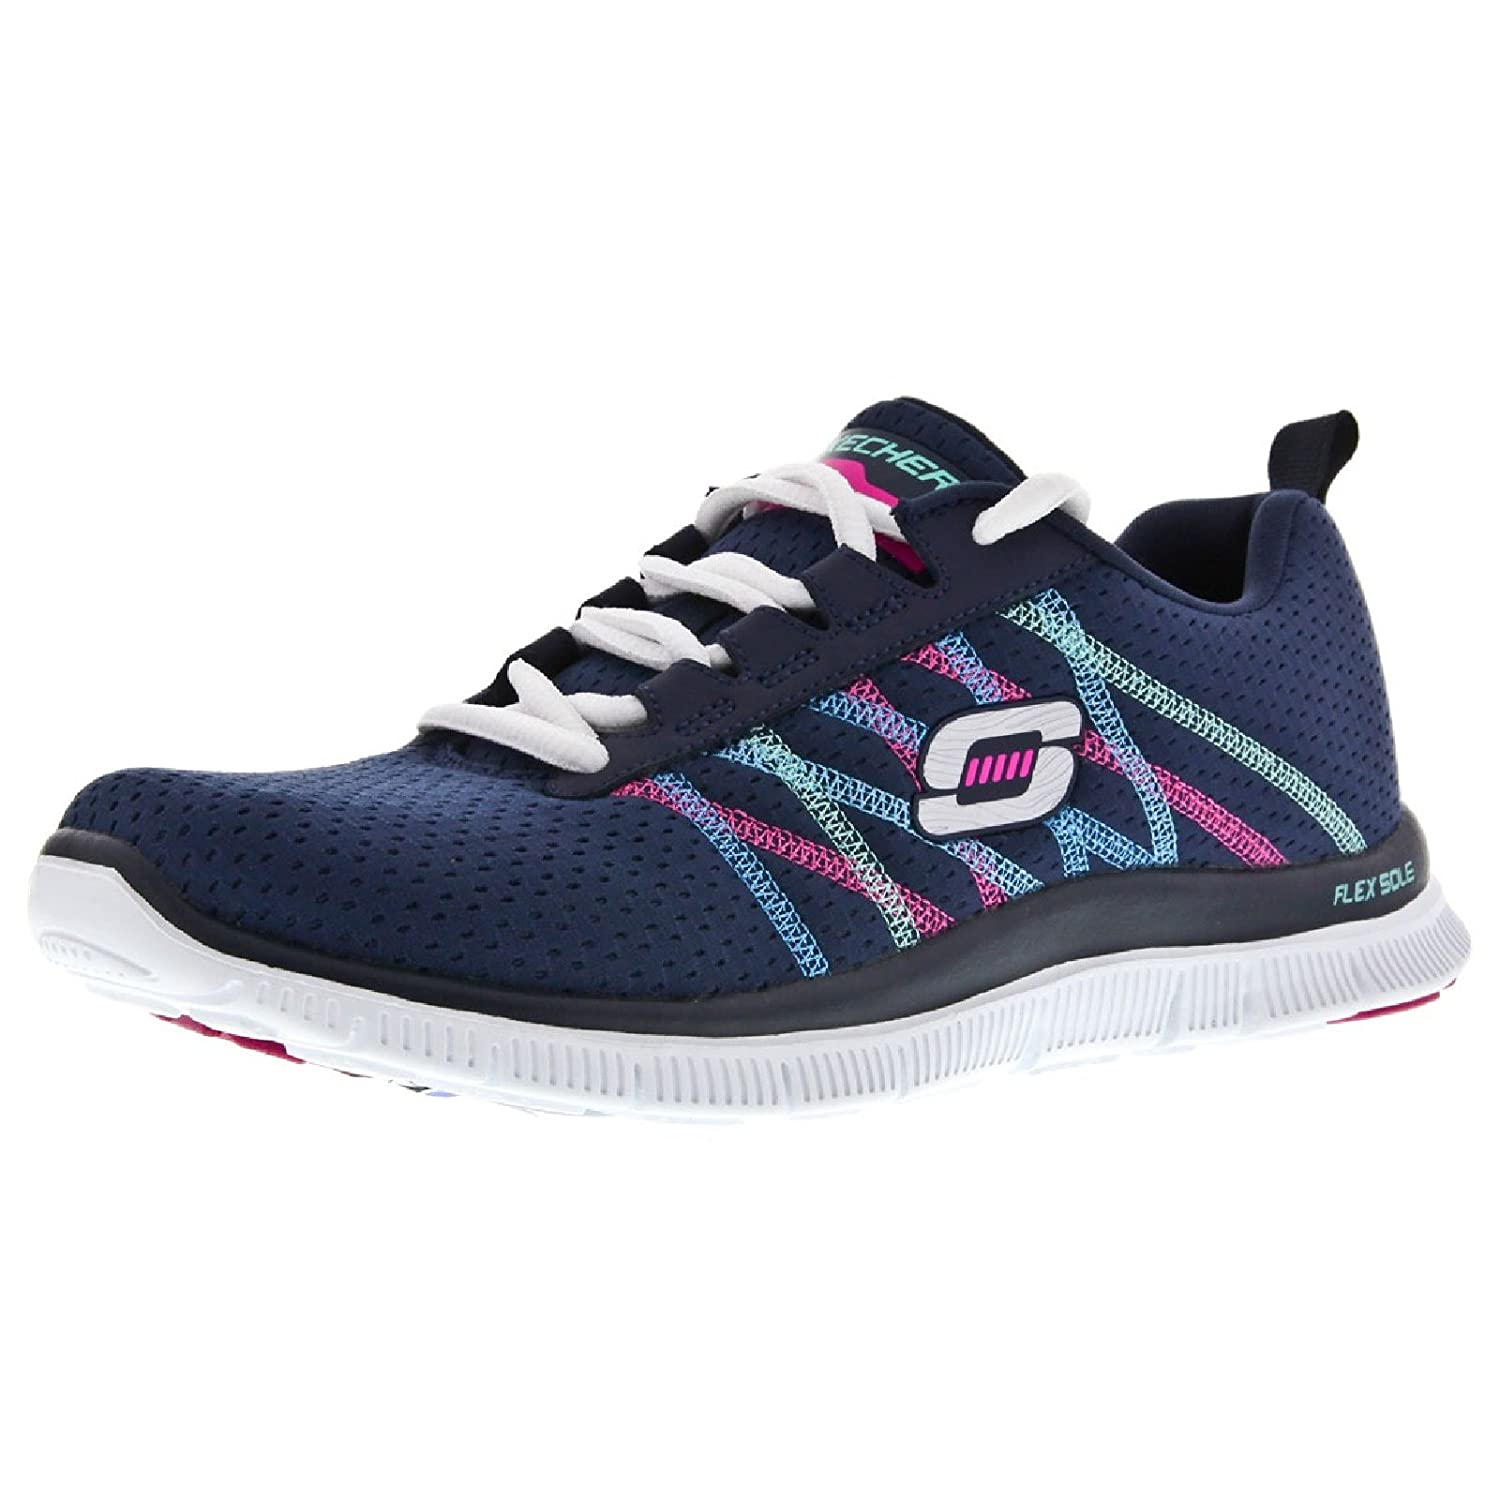 Skechers Flex Appeal Something Fun - Zapatillas para mujer: Amazon.es: Zapatos y complementos